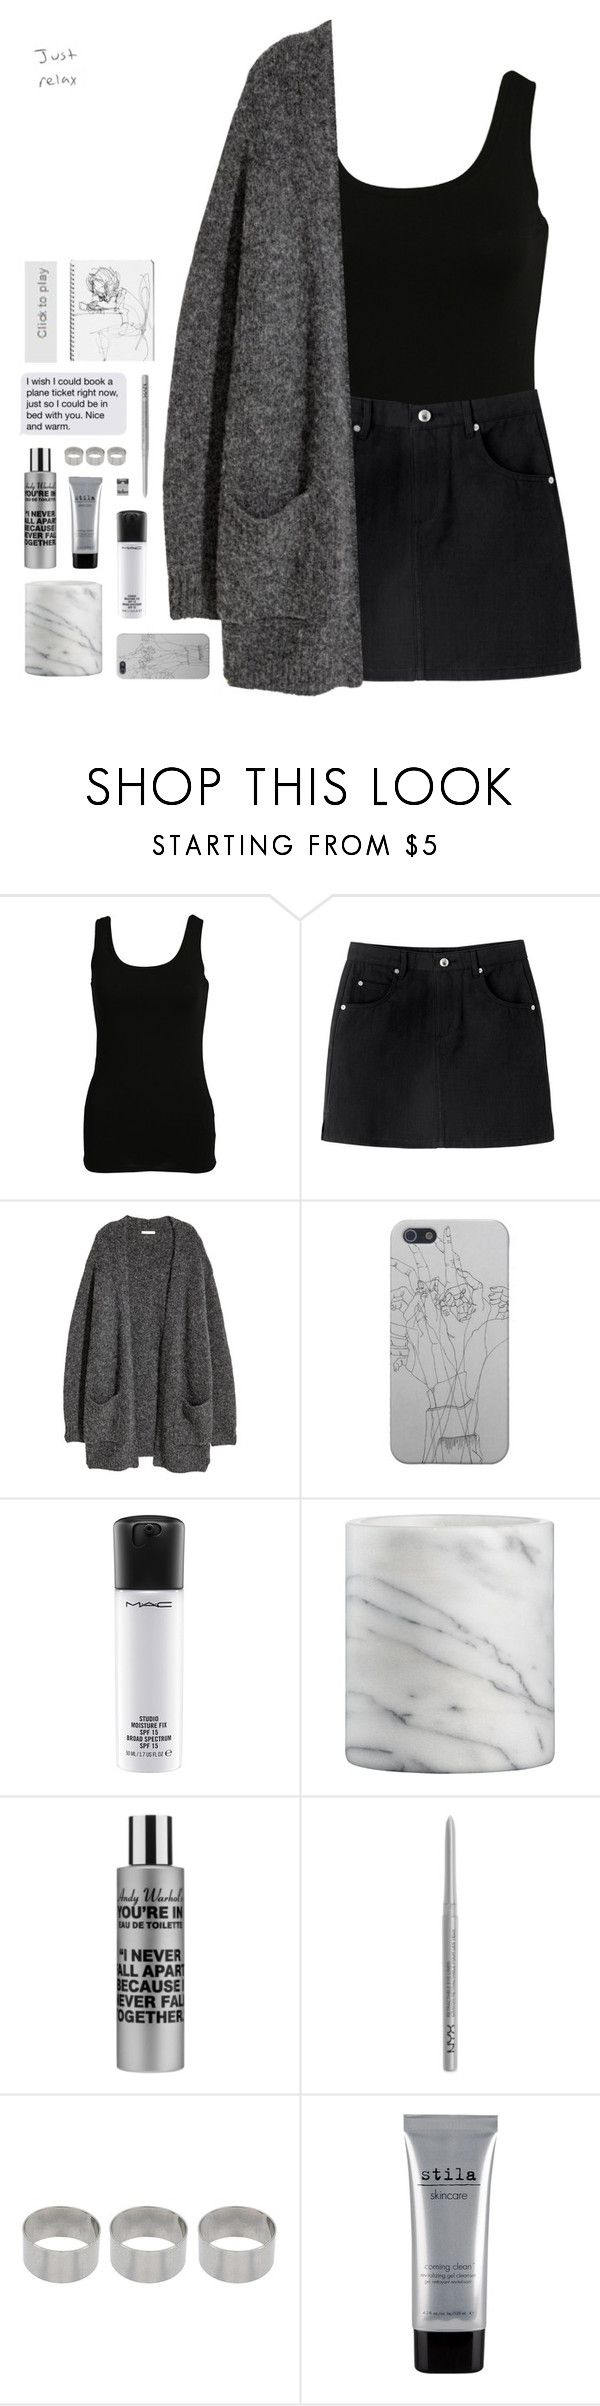 """1340"" by glitterals ❤ liked on Polyvore featuring Vila Milano, MAC Cosmetics, Crate and Barrel, Comme des Garçons, NYX, ASOS, Stila and Børn"